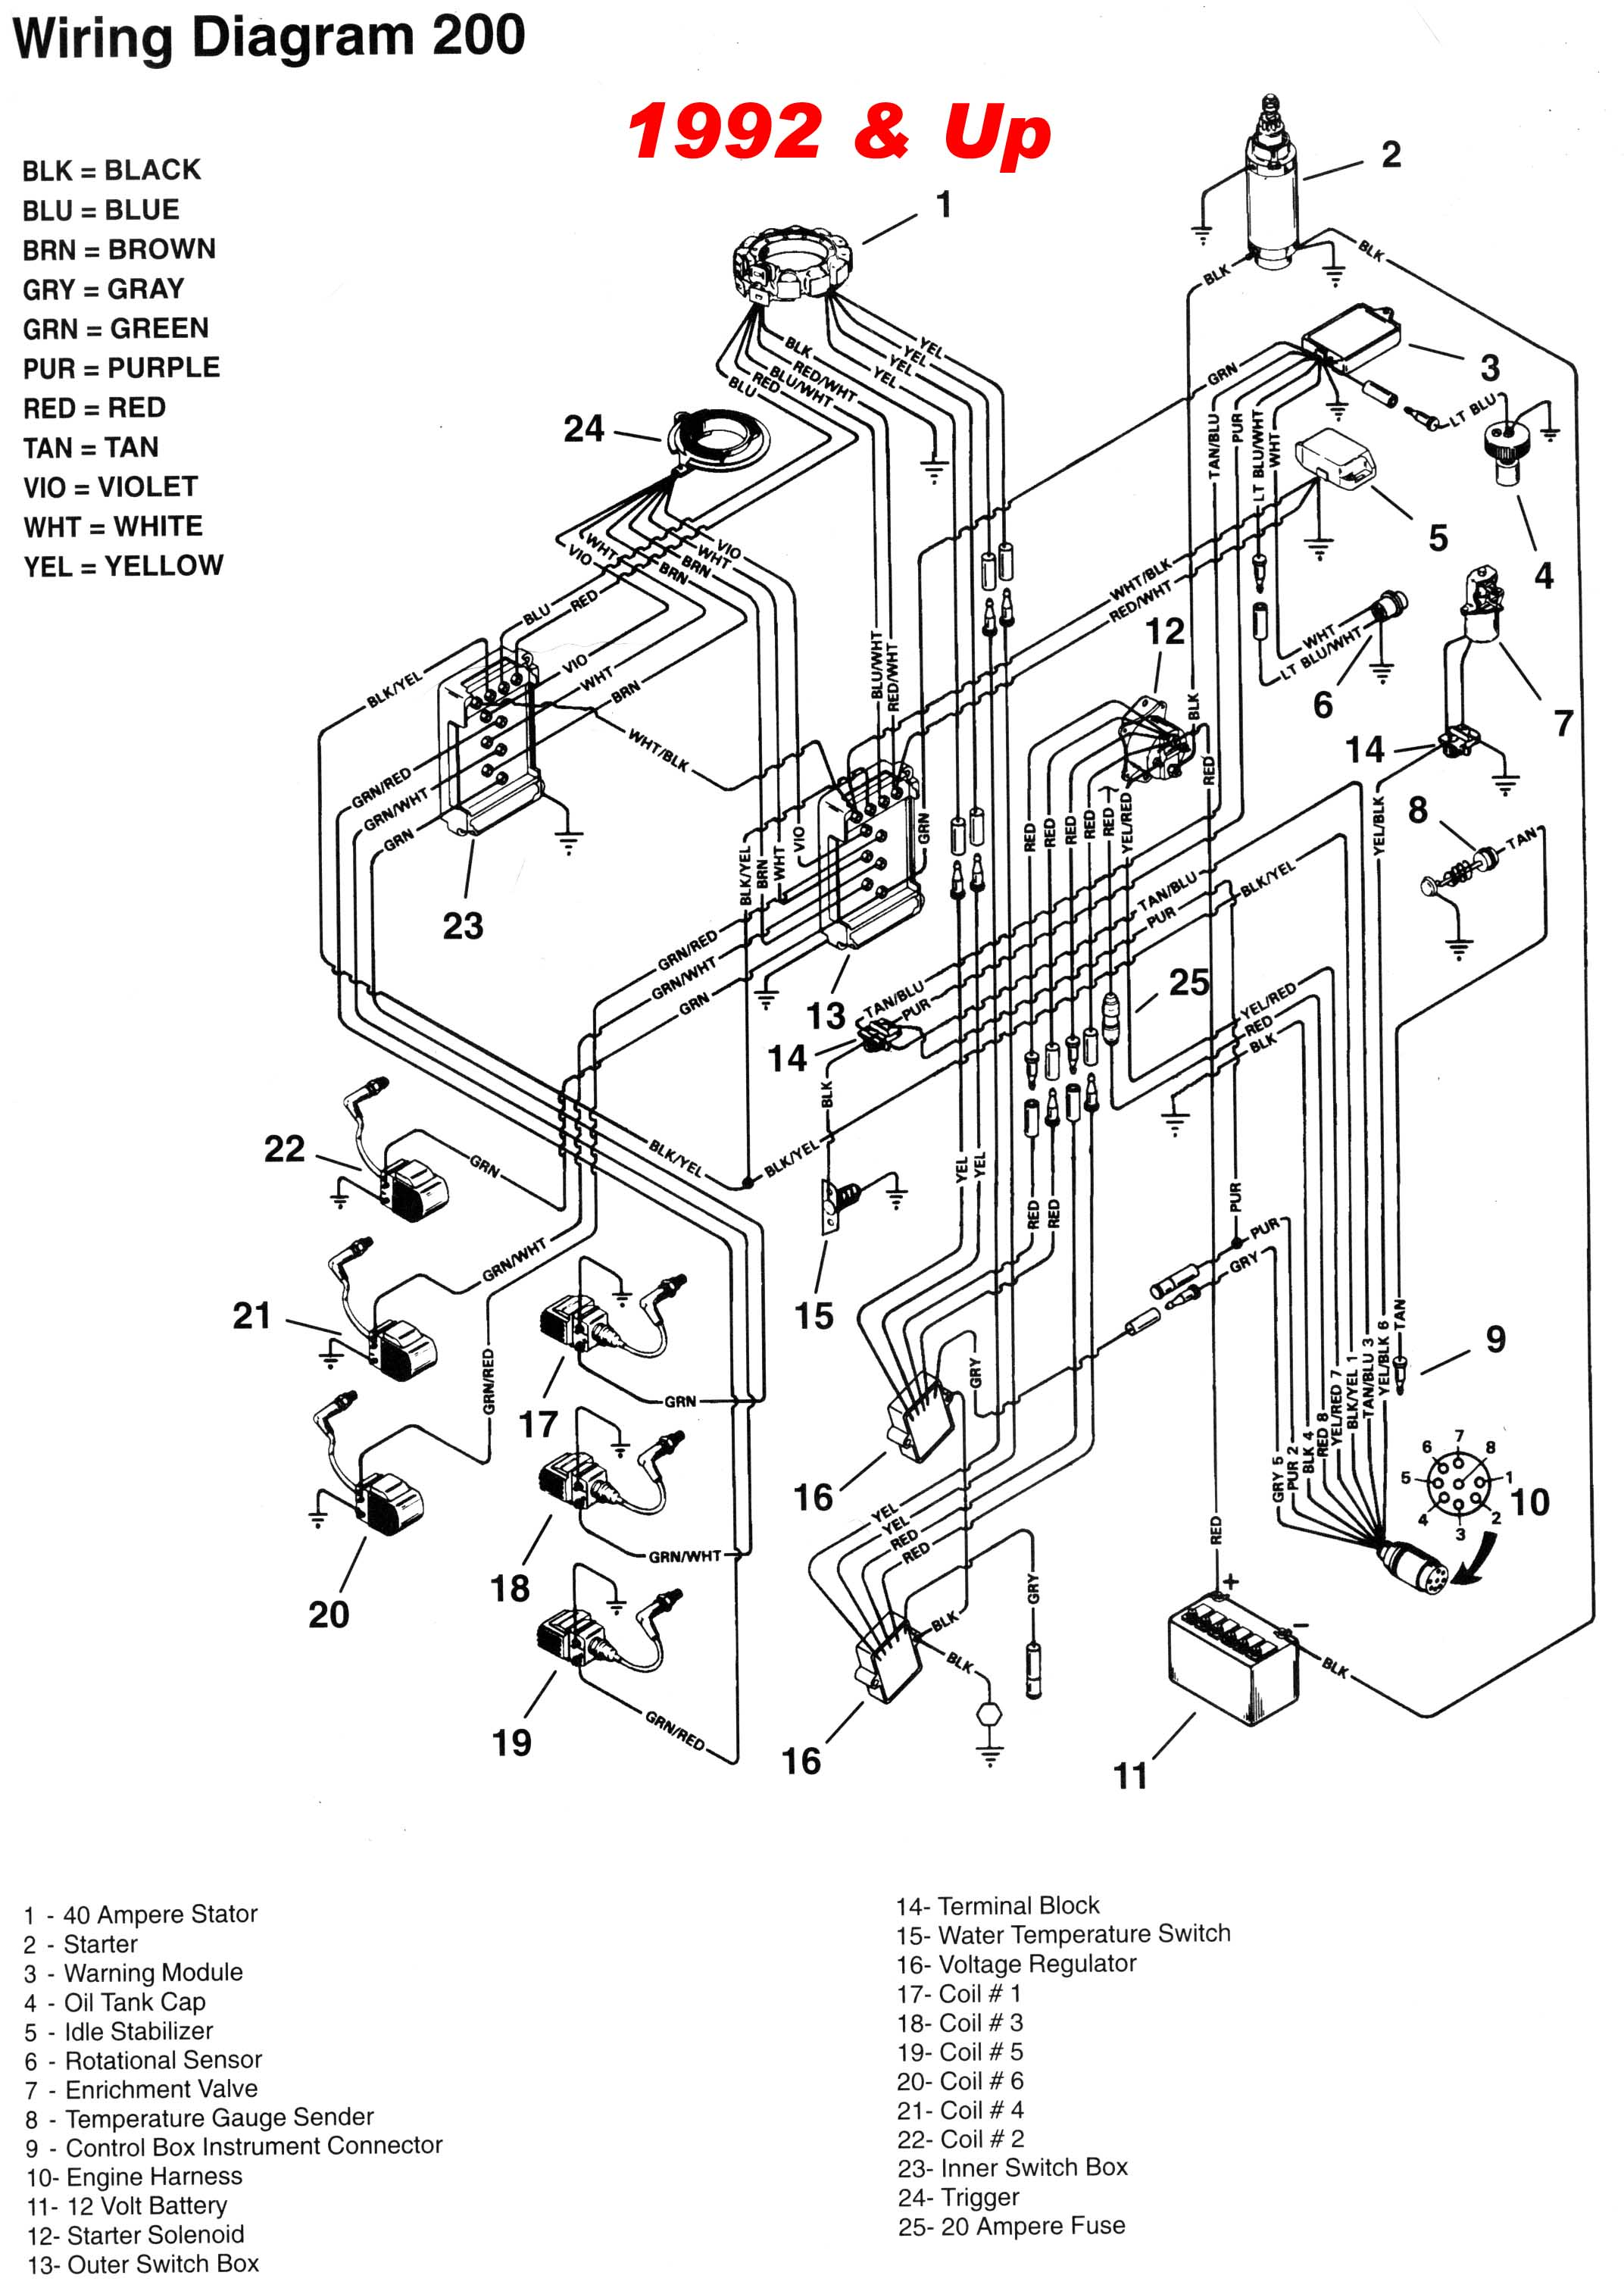 Mercury Outboard 2.5 and 3.0L V6 and Gearcase FAQ on mercruiser ignition coil, mercruiser coil wire, mercruiser boat wiring diagrams, mercruiser distributor diagram, mercruiser alpha one outdrive parts diagram, 350 chevy engine wiring diagram, mercruiser 5.7 diagram, mercruiser ignition diagram, mercruiser starter diagram, mopar neutral safety switch wiring diagram, mercruiser coil sae j1171, mercury ignition switch wiring diagram, mercruiser fuel pump diagram, mercruiser 5.0 mpi wiring,